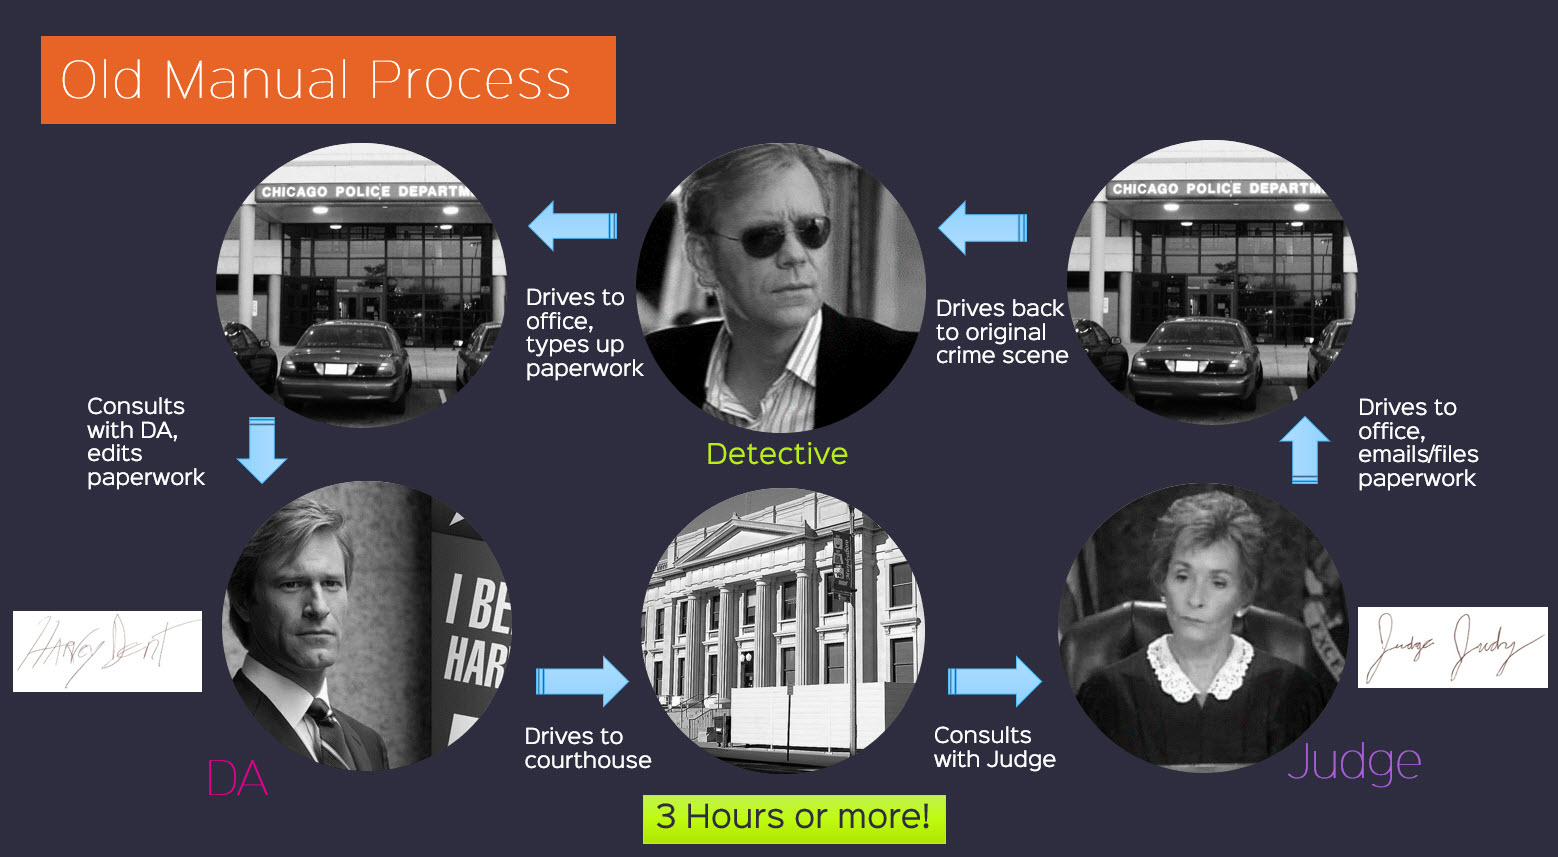 old-search-warrant-process